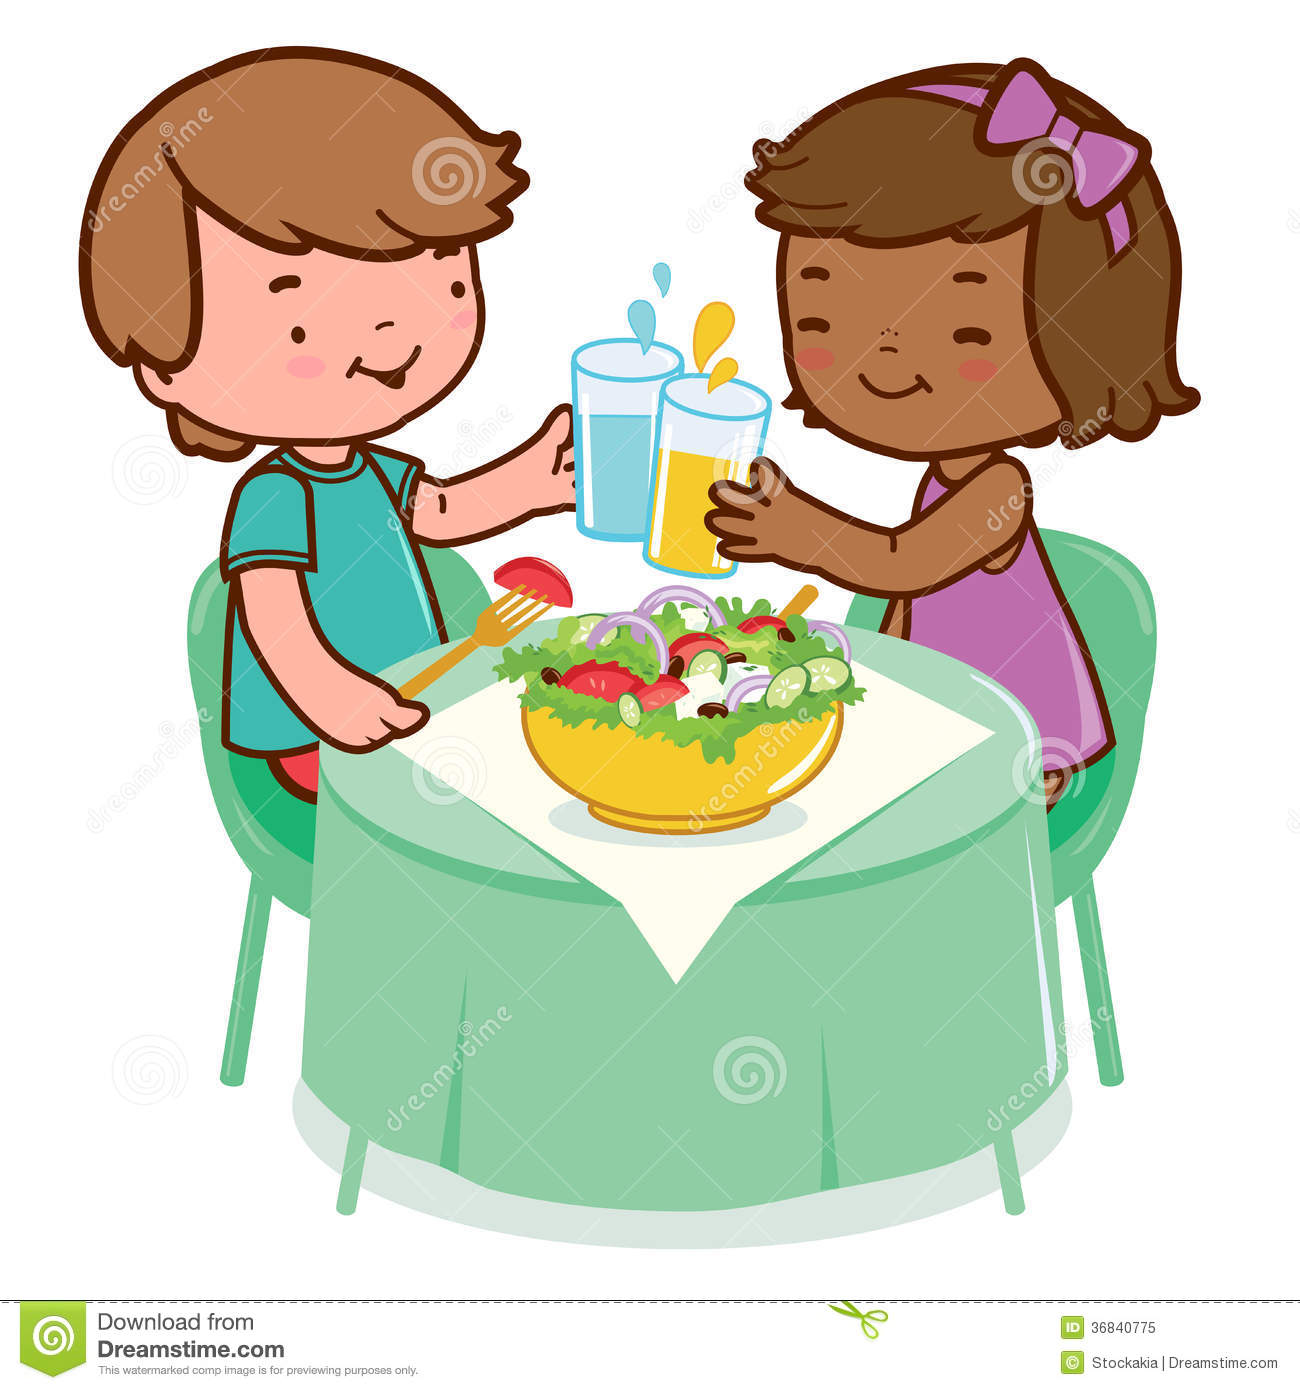 Essen clipart png library library Mittagessen clipart - ClipartFest png library library